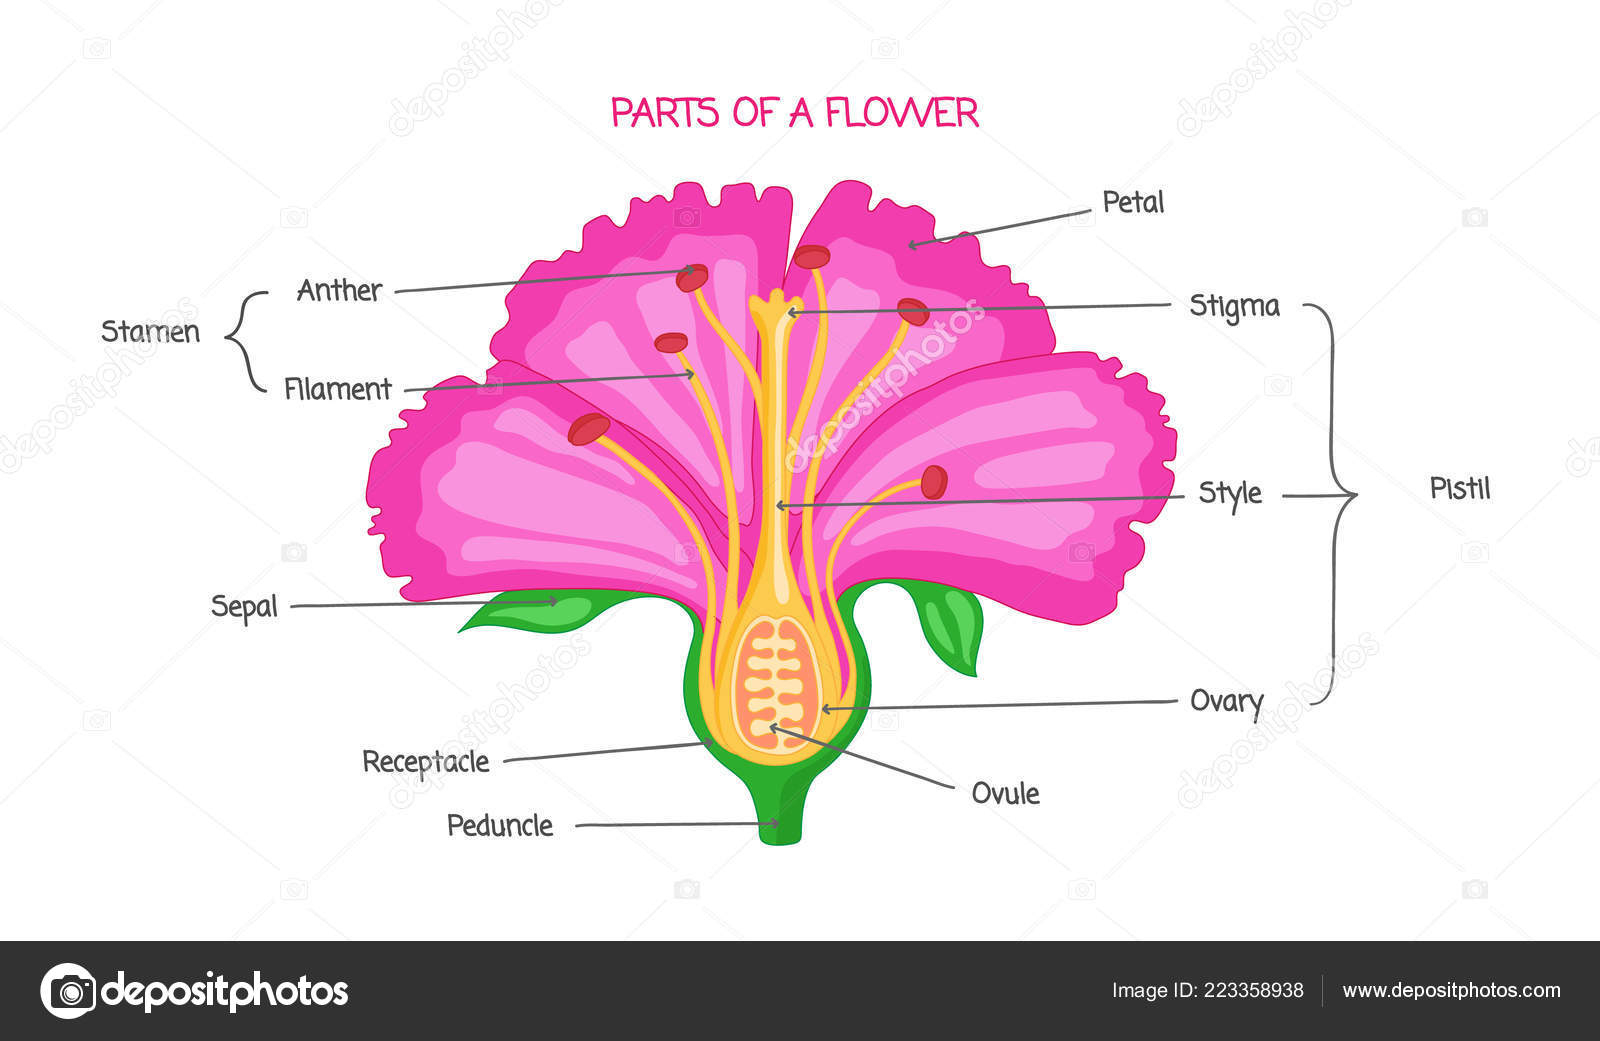 Parts Of A Flower Diagram Cross Section Of A Hibiscus Flower Part Of A Flower Biological